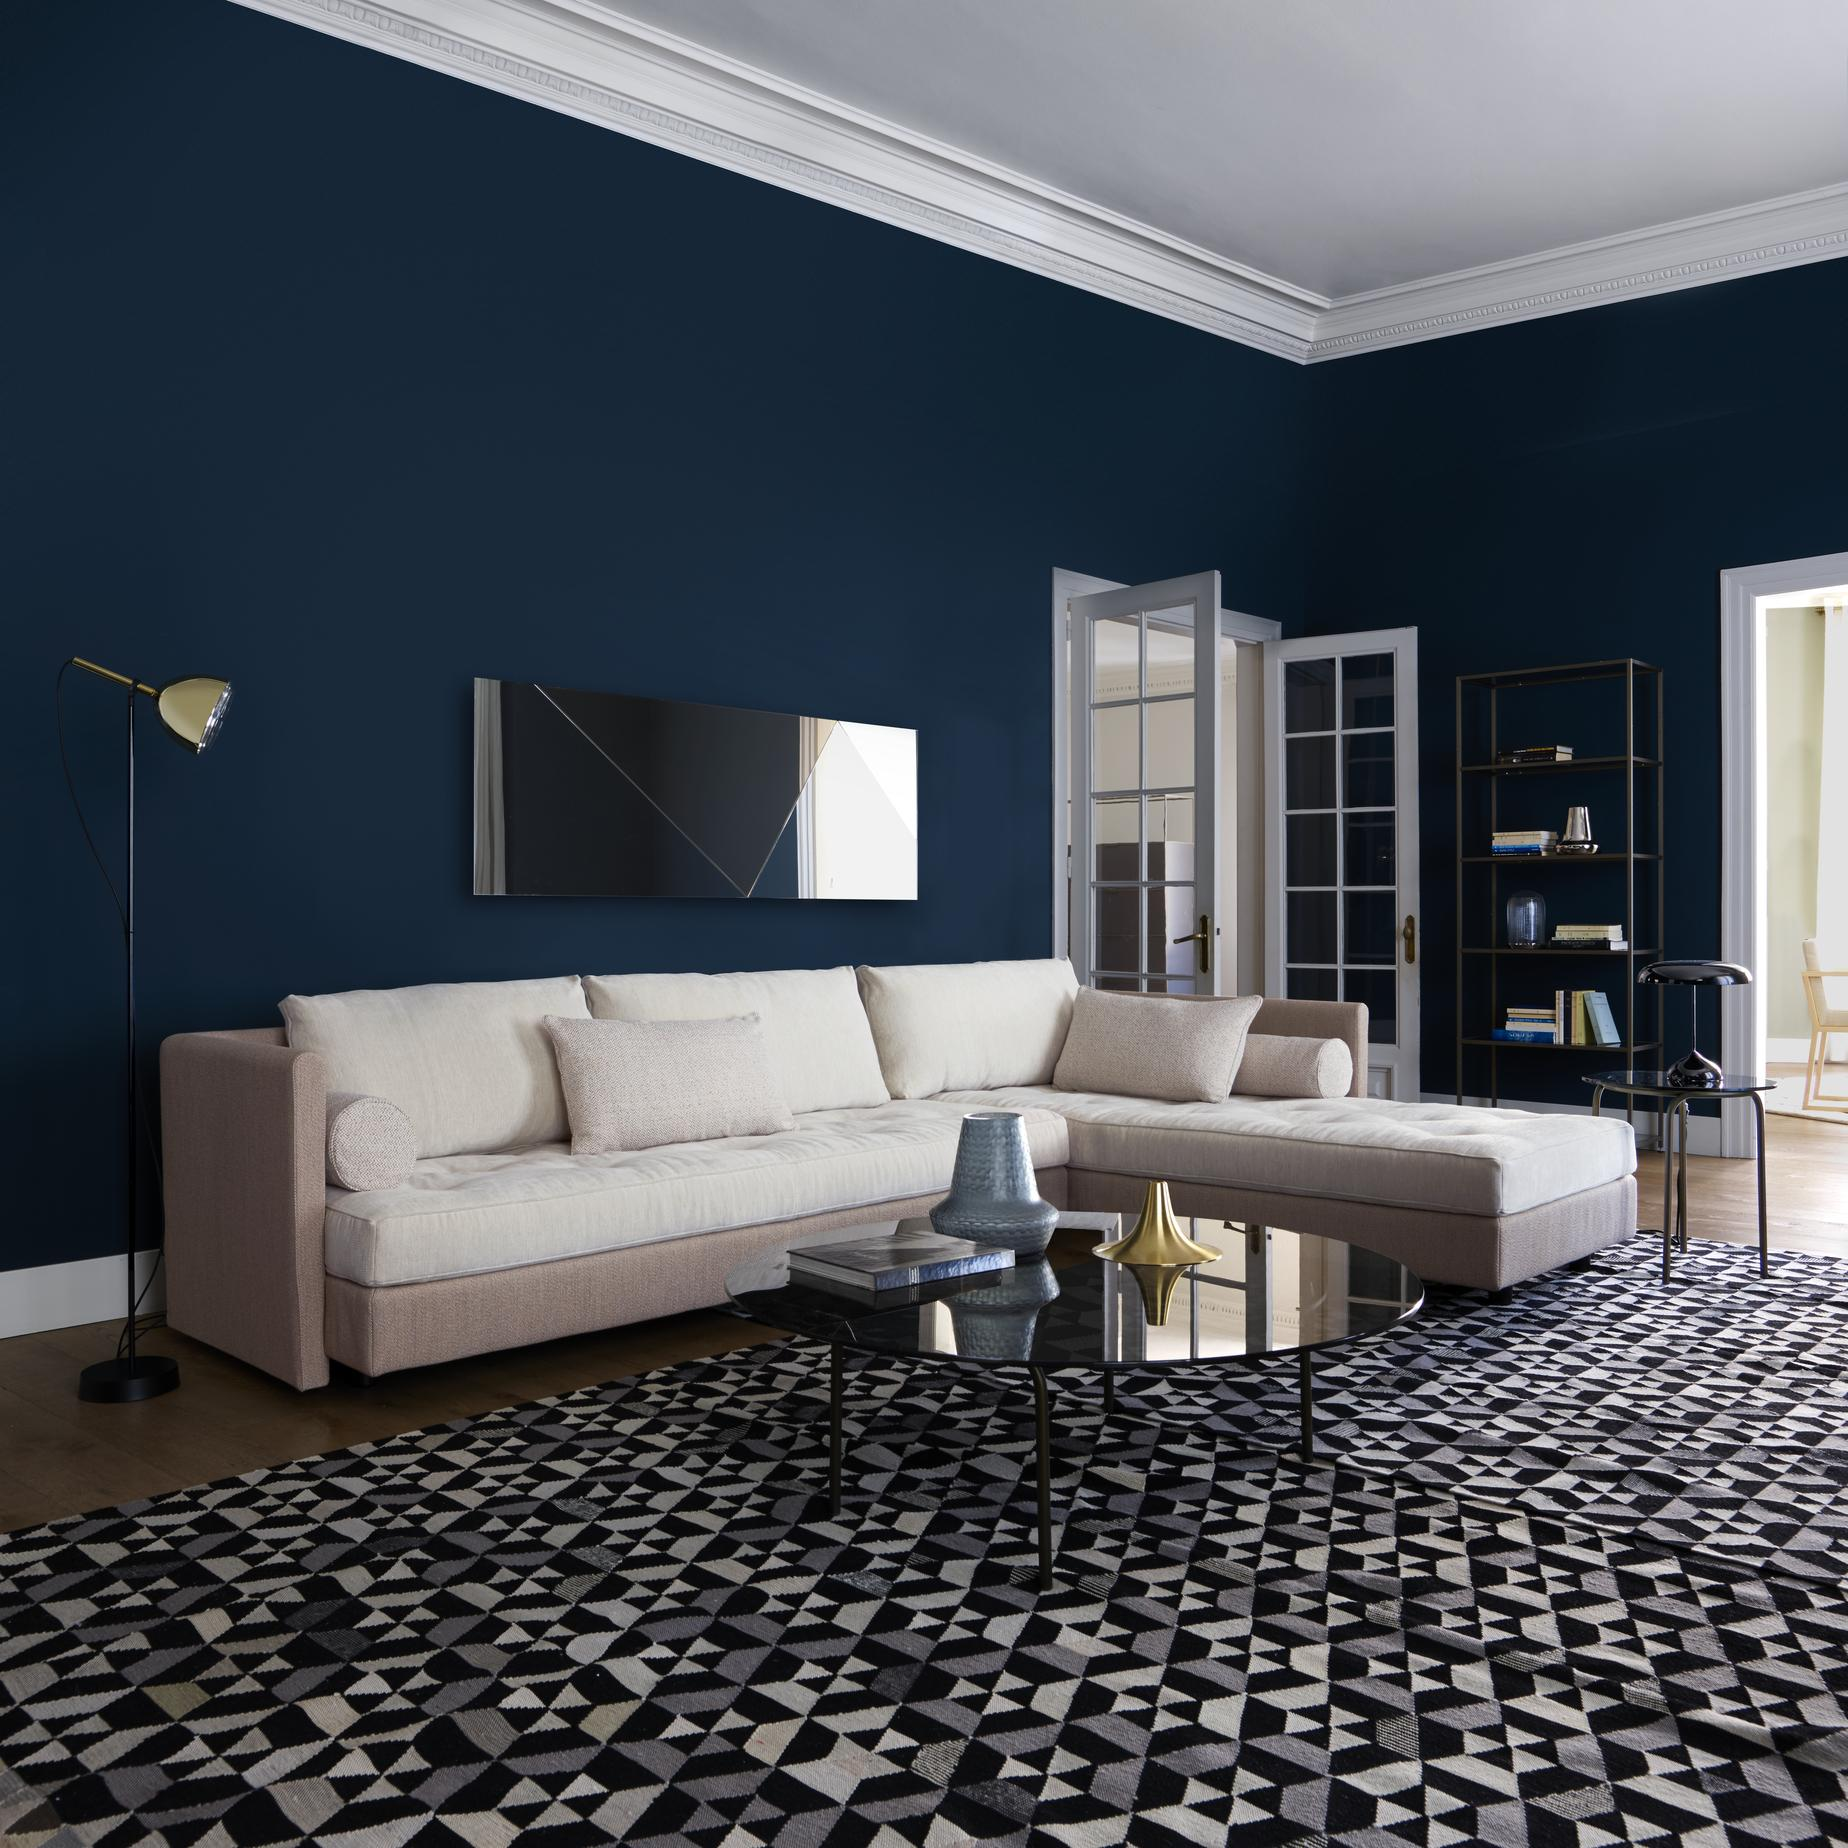 Teppich Discount Leipzig Gbr Hex Hex Rugs From Designer Bertjan Pot Ligne Roset Official Site